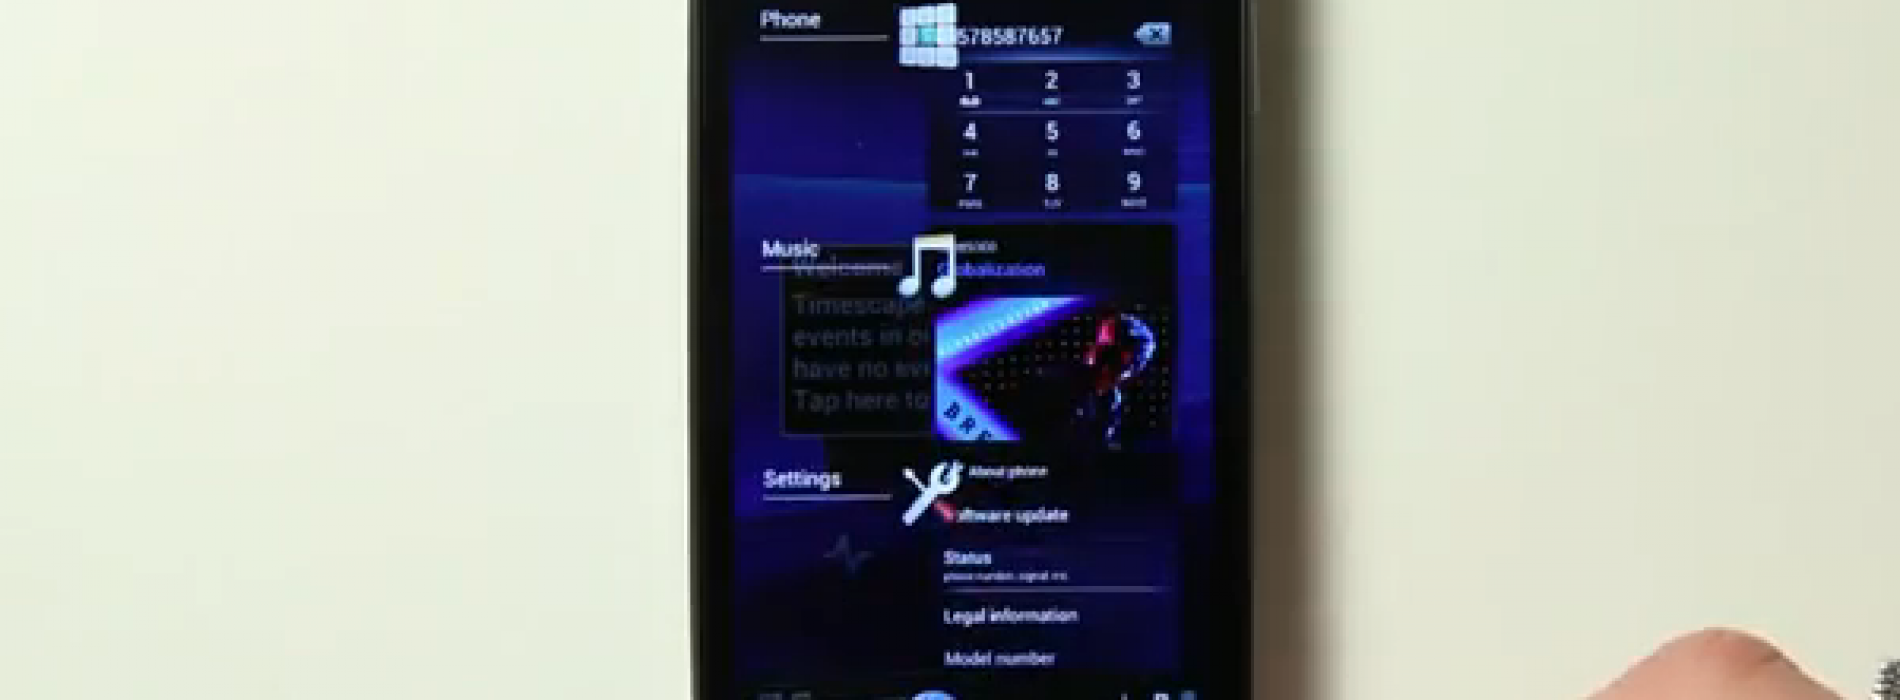 Sony Ericsson releases alpha version of Android 4.0 ROM for unlocked Xperia models